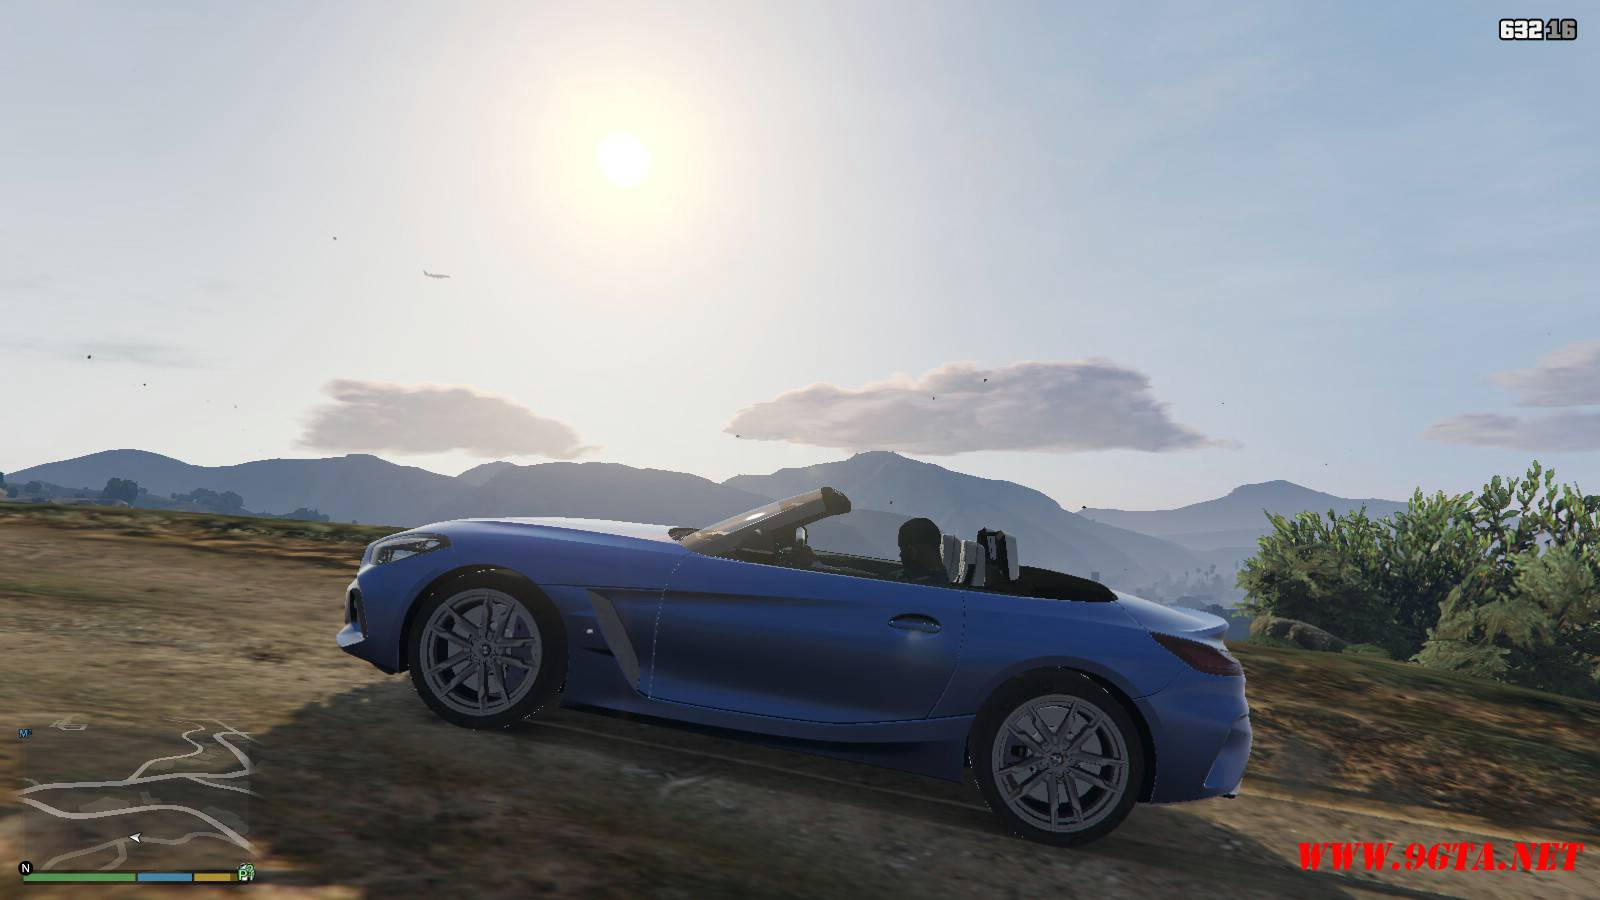 2019 BMW Z4 M40i v2.0 Mod For GTA5 (2)